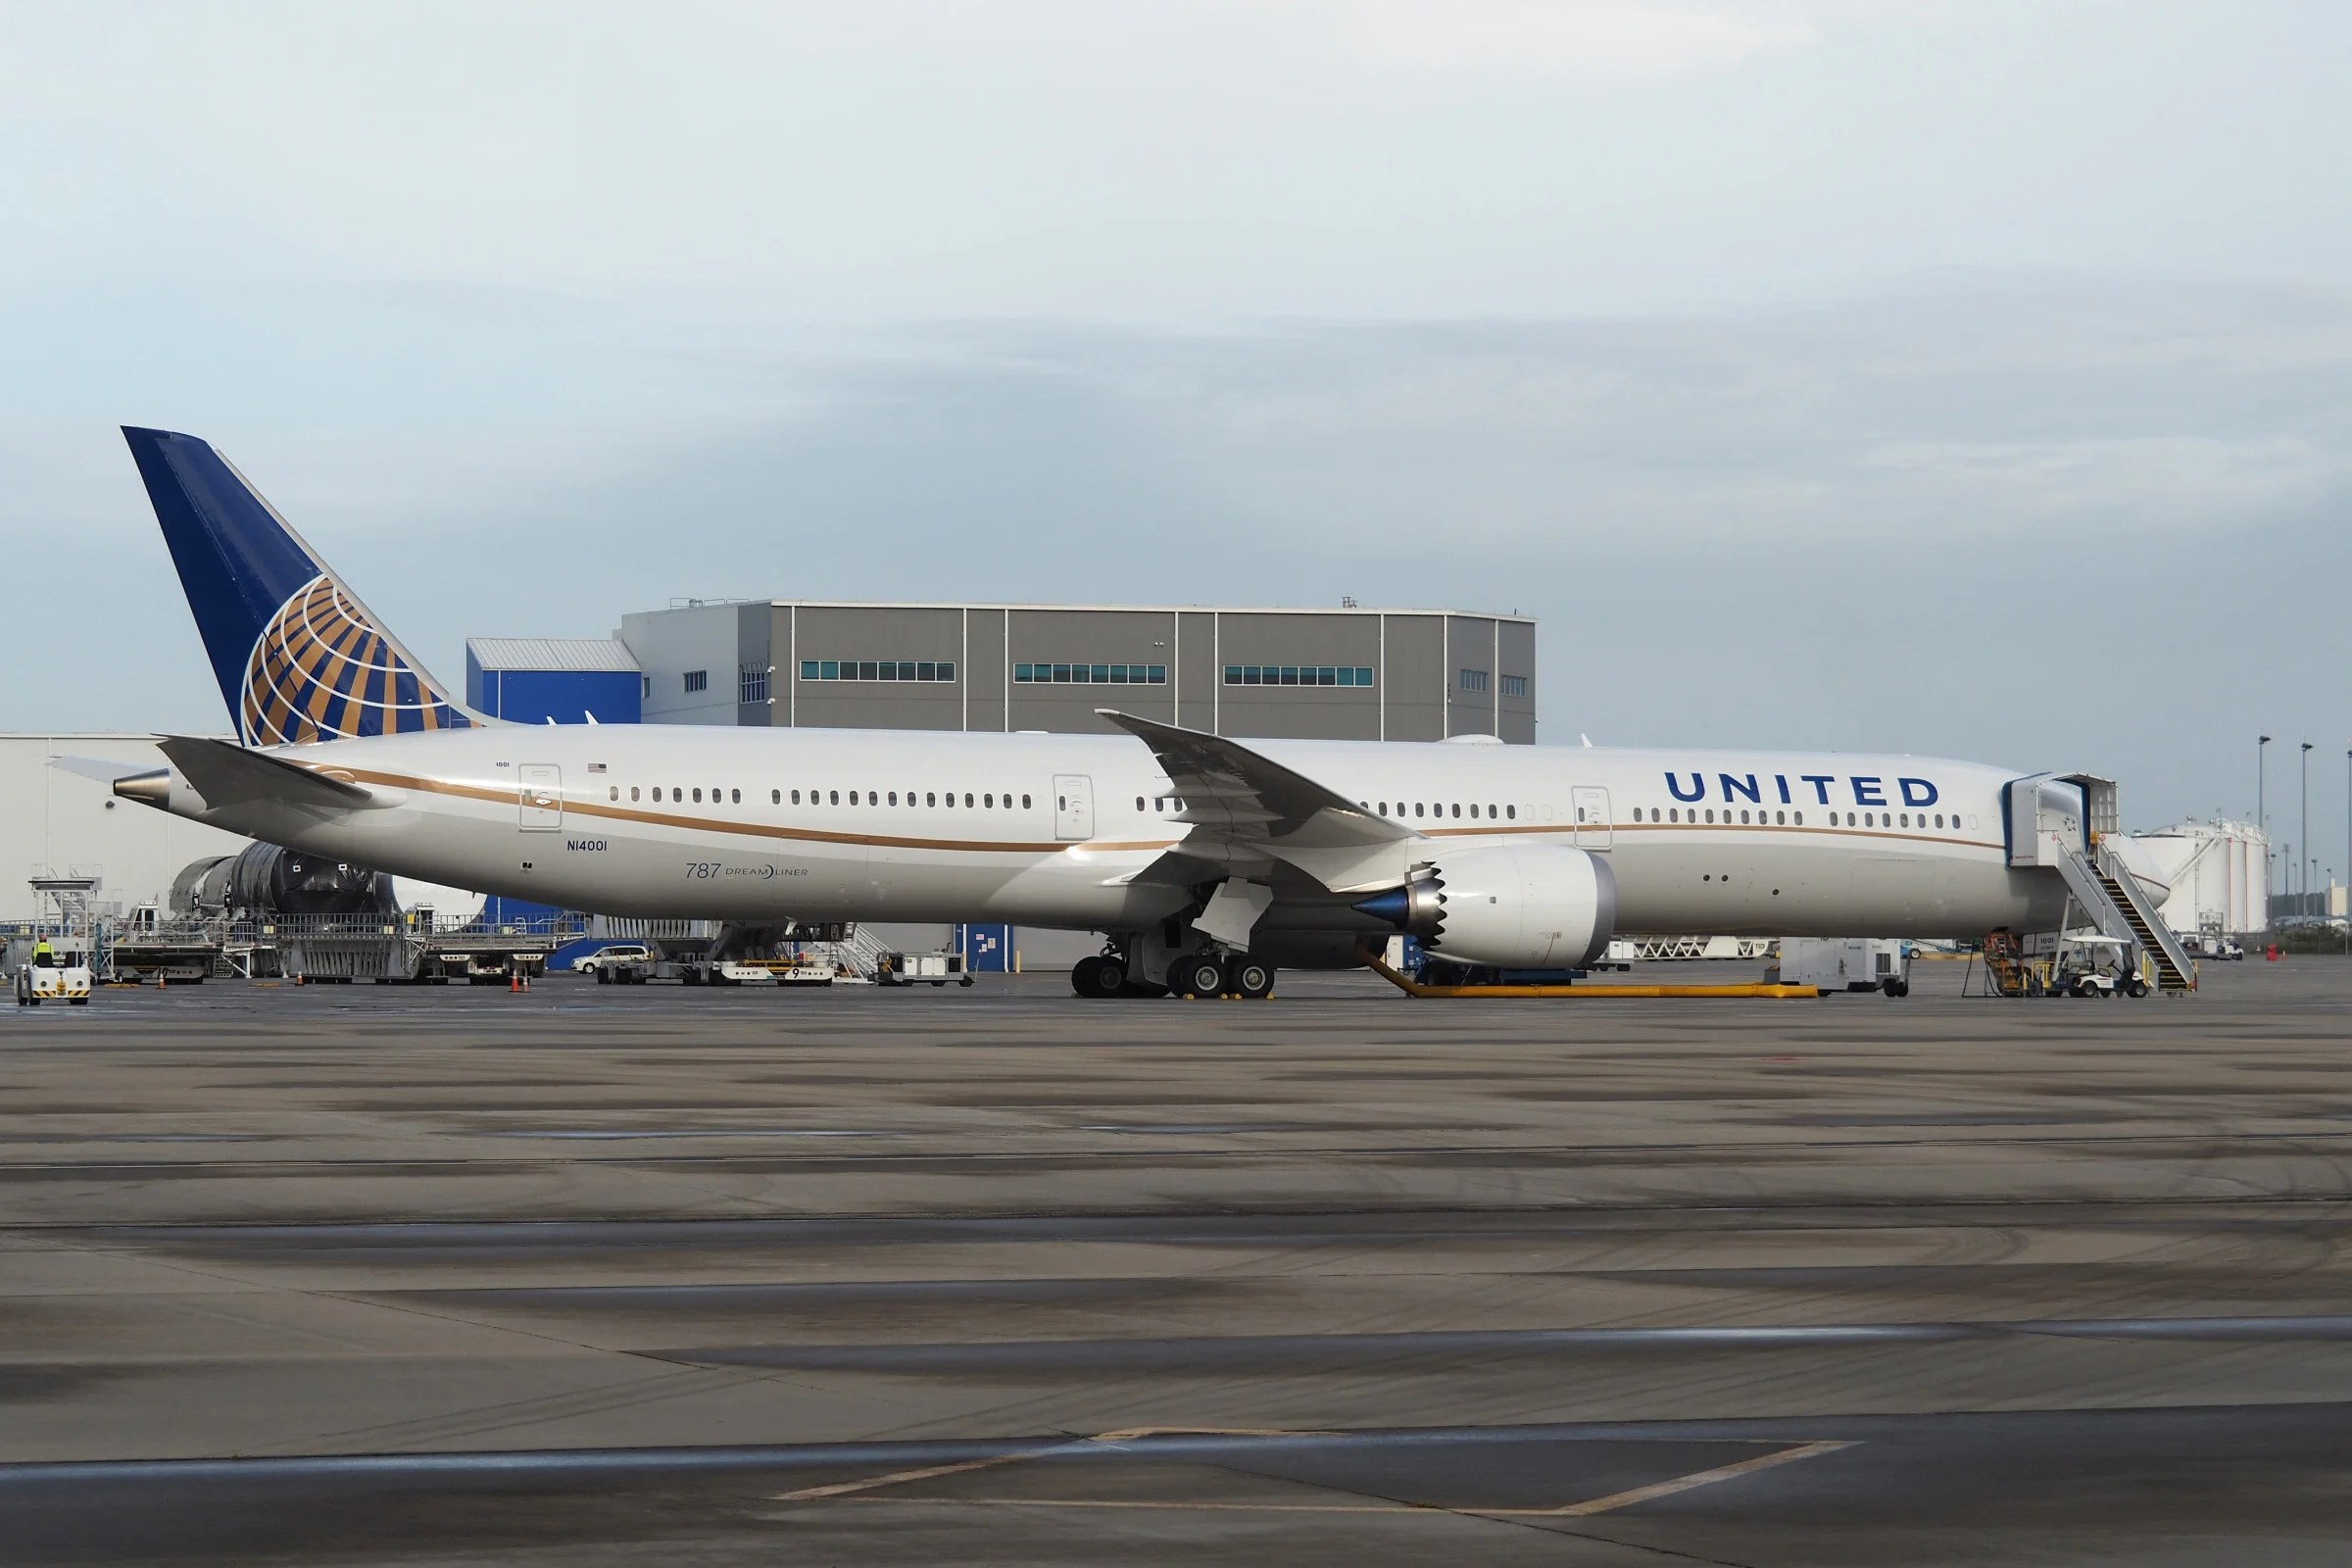 United S About To Take Delivery Of Its First 787 10 Dreamliner